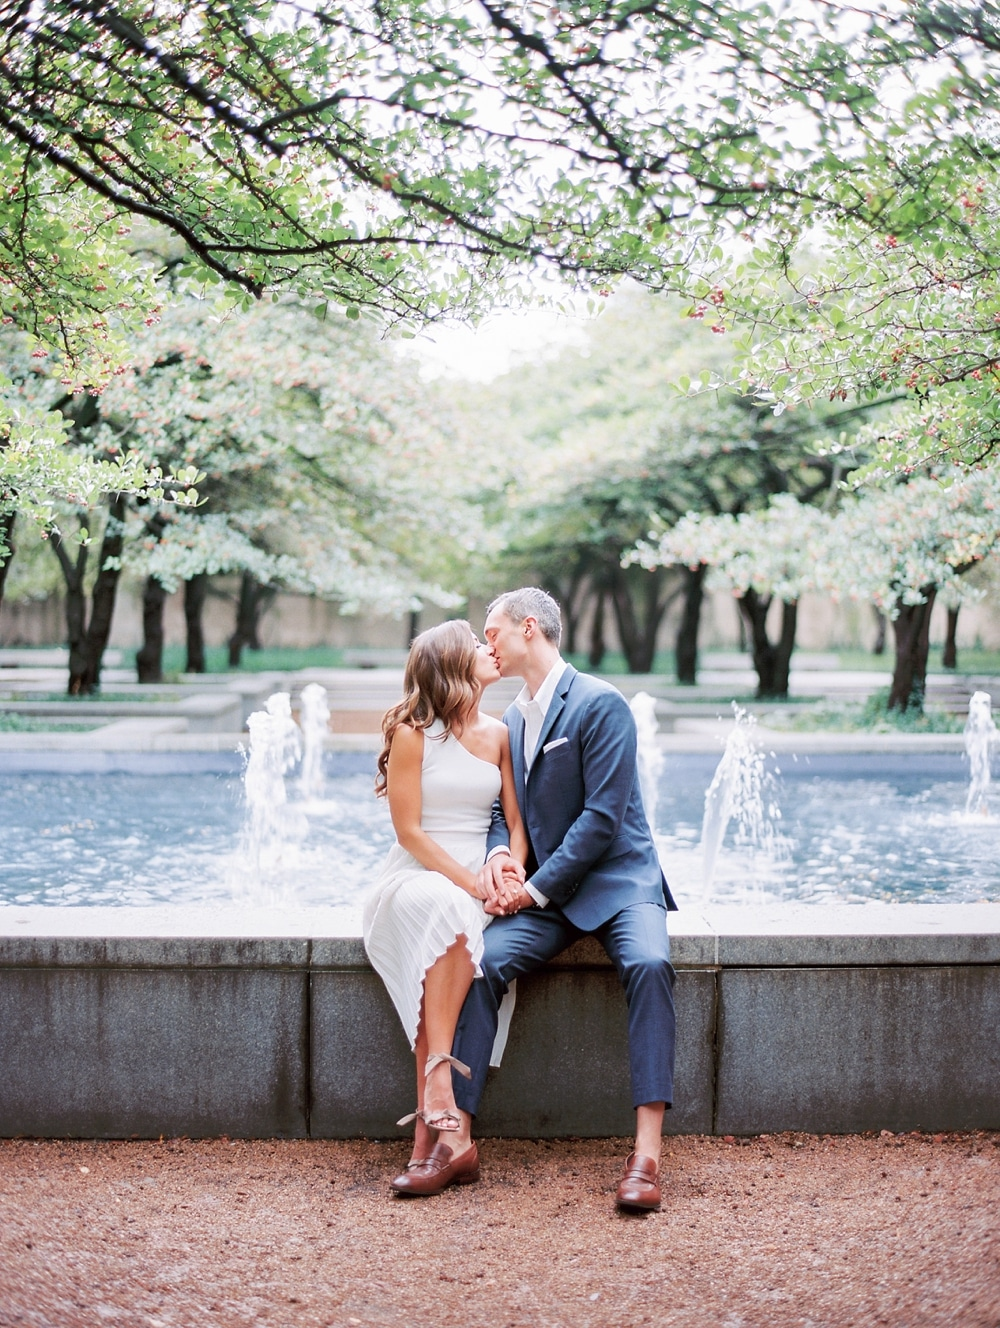 Kristin-La-Voie-Photography-chicago-art-institute-engagement-wedding-photos-57